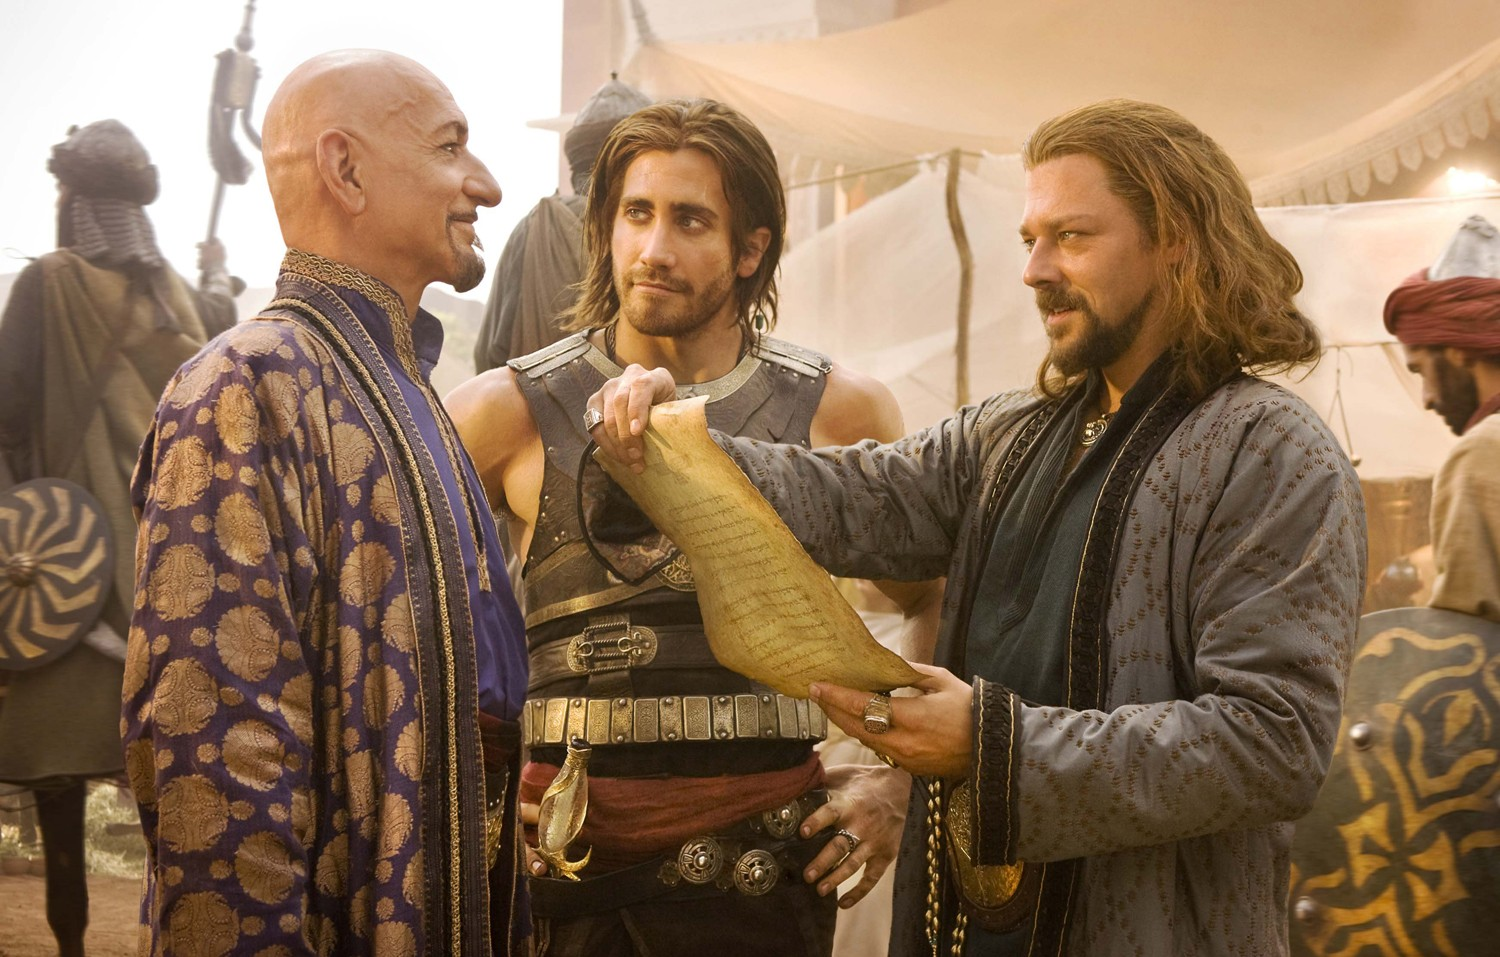 Ben Kingsley,Jake Gyllenhaal,Richard Coyle